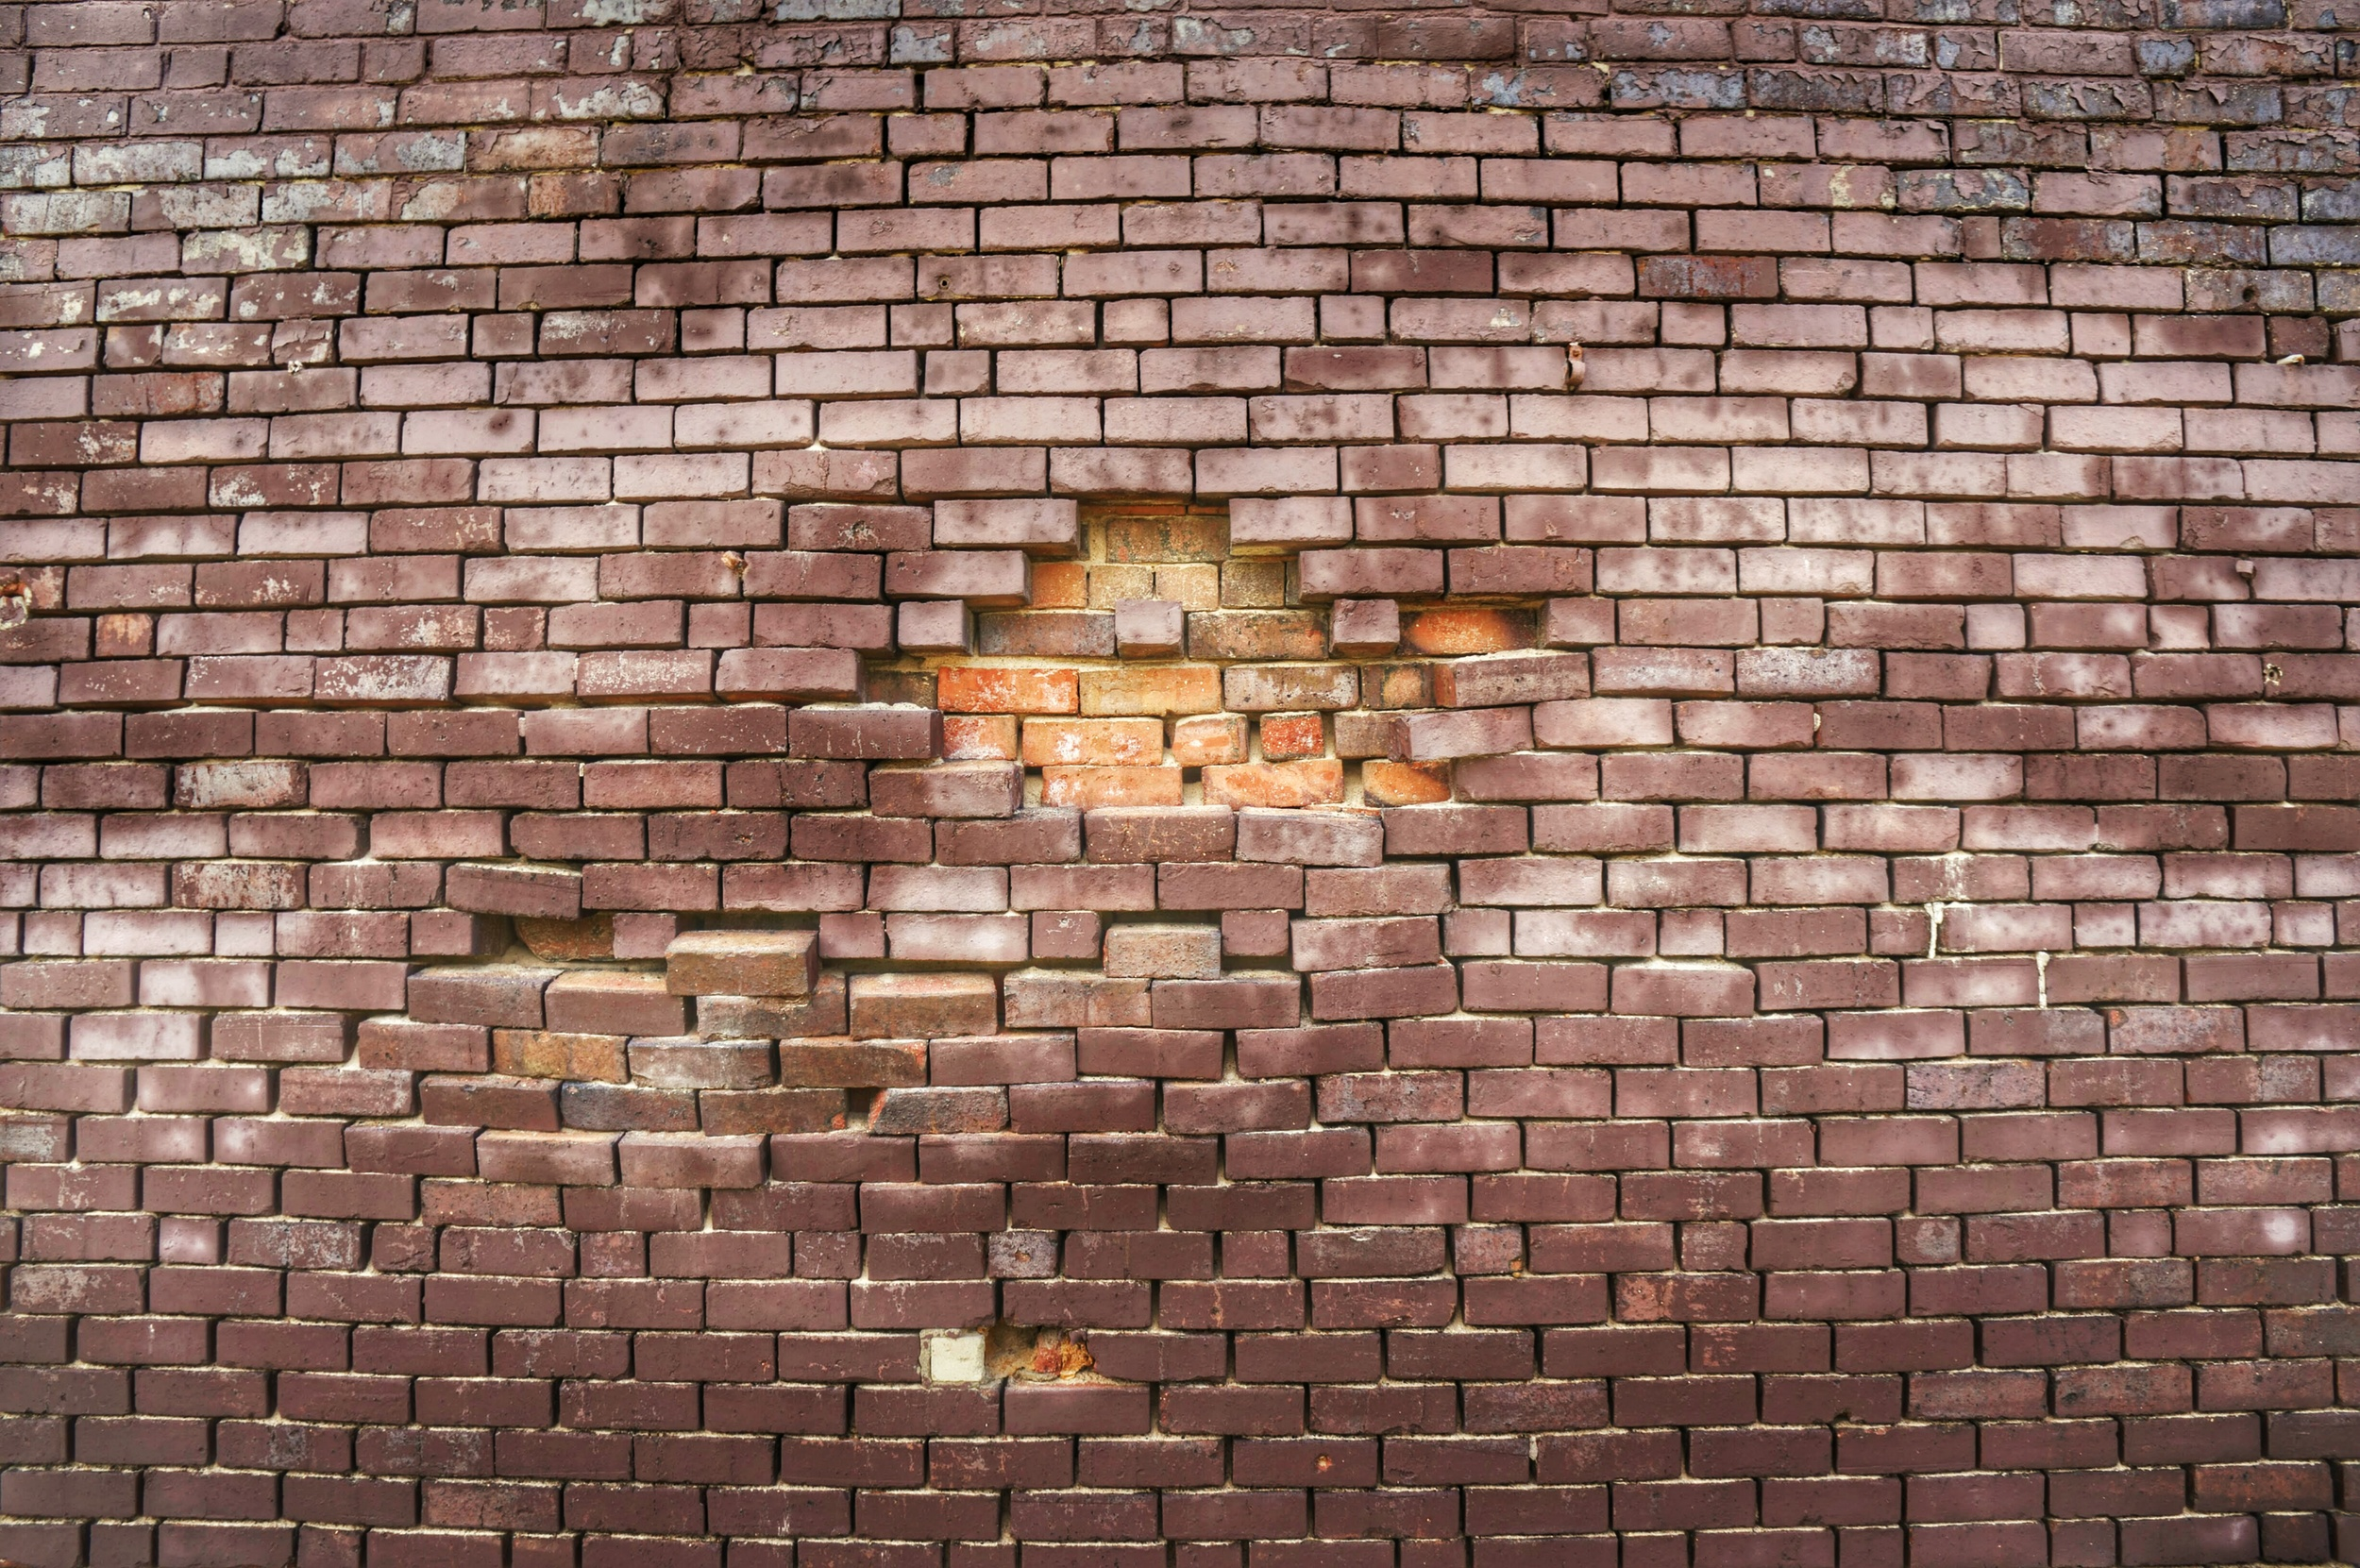 just a sweet ass brick wall